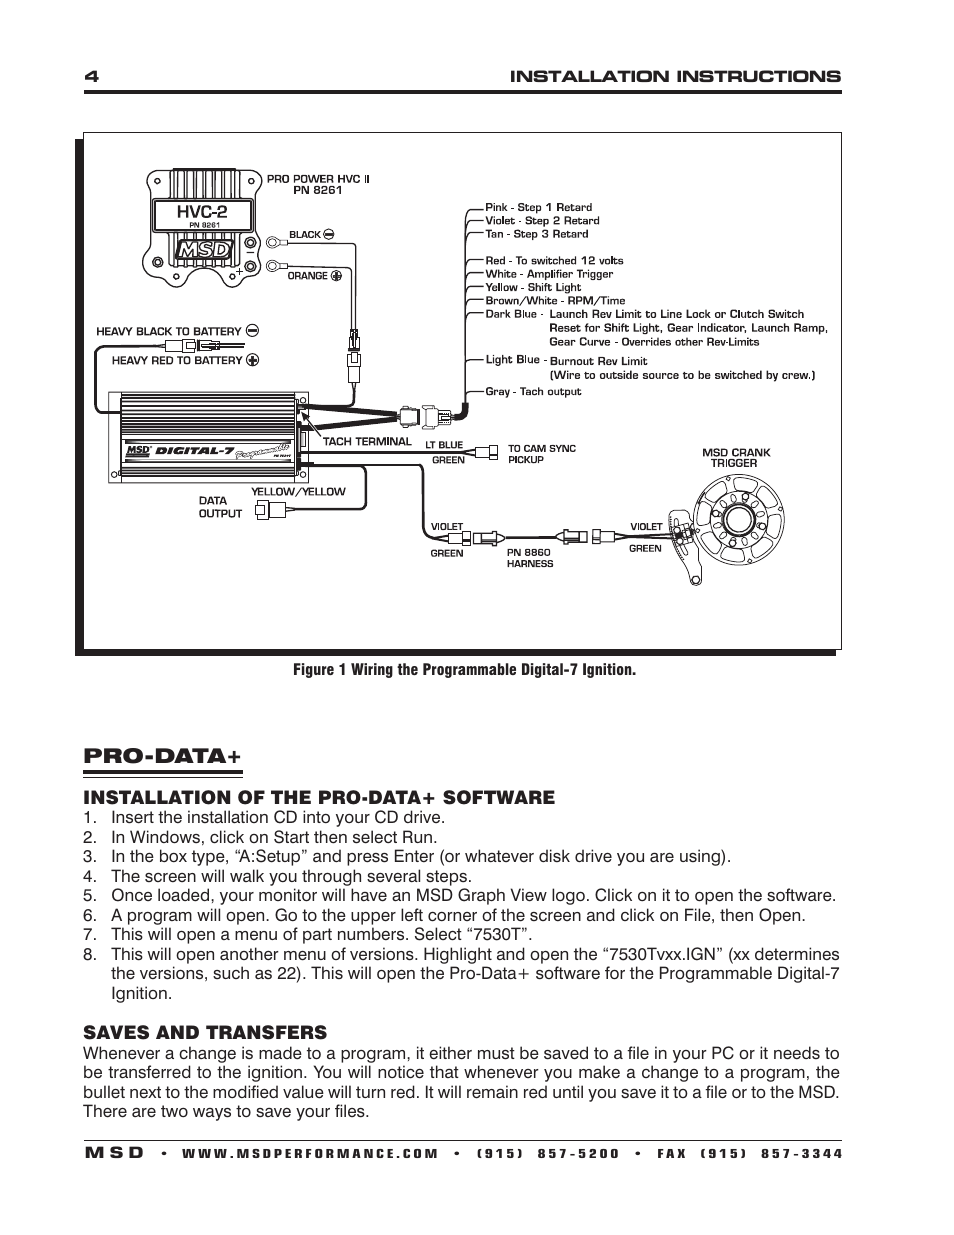 Wiring Diagram Msd 7530t - Wiring Diagram G11 on 1996 camaro door diagram, optispark distributor, lt1 engine diagram, ls1 engine diagram, 1993 corvette vats diagram, optispark ignition wiring, optispark ignition diagram, ls1 fuel system diagram, 1994 camaro lt1 firing order diagram,